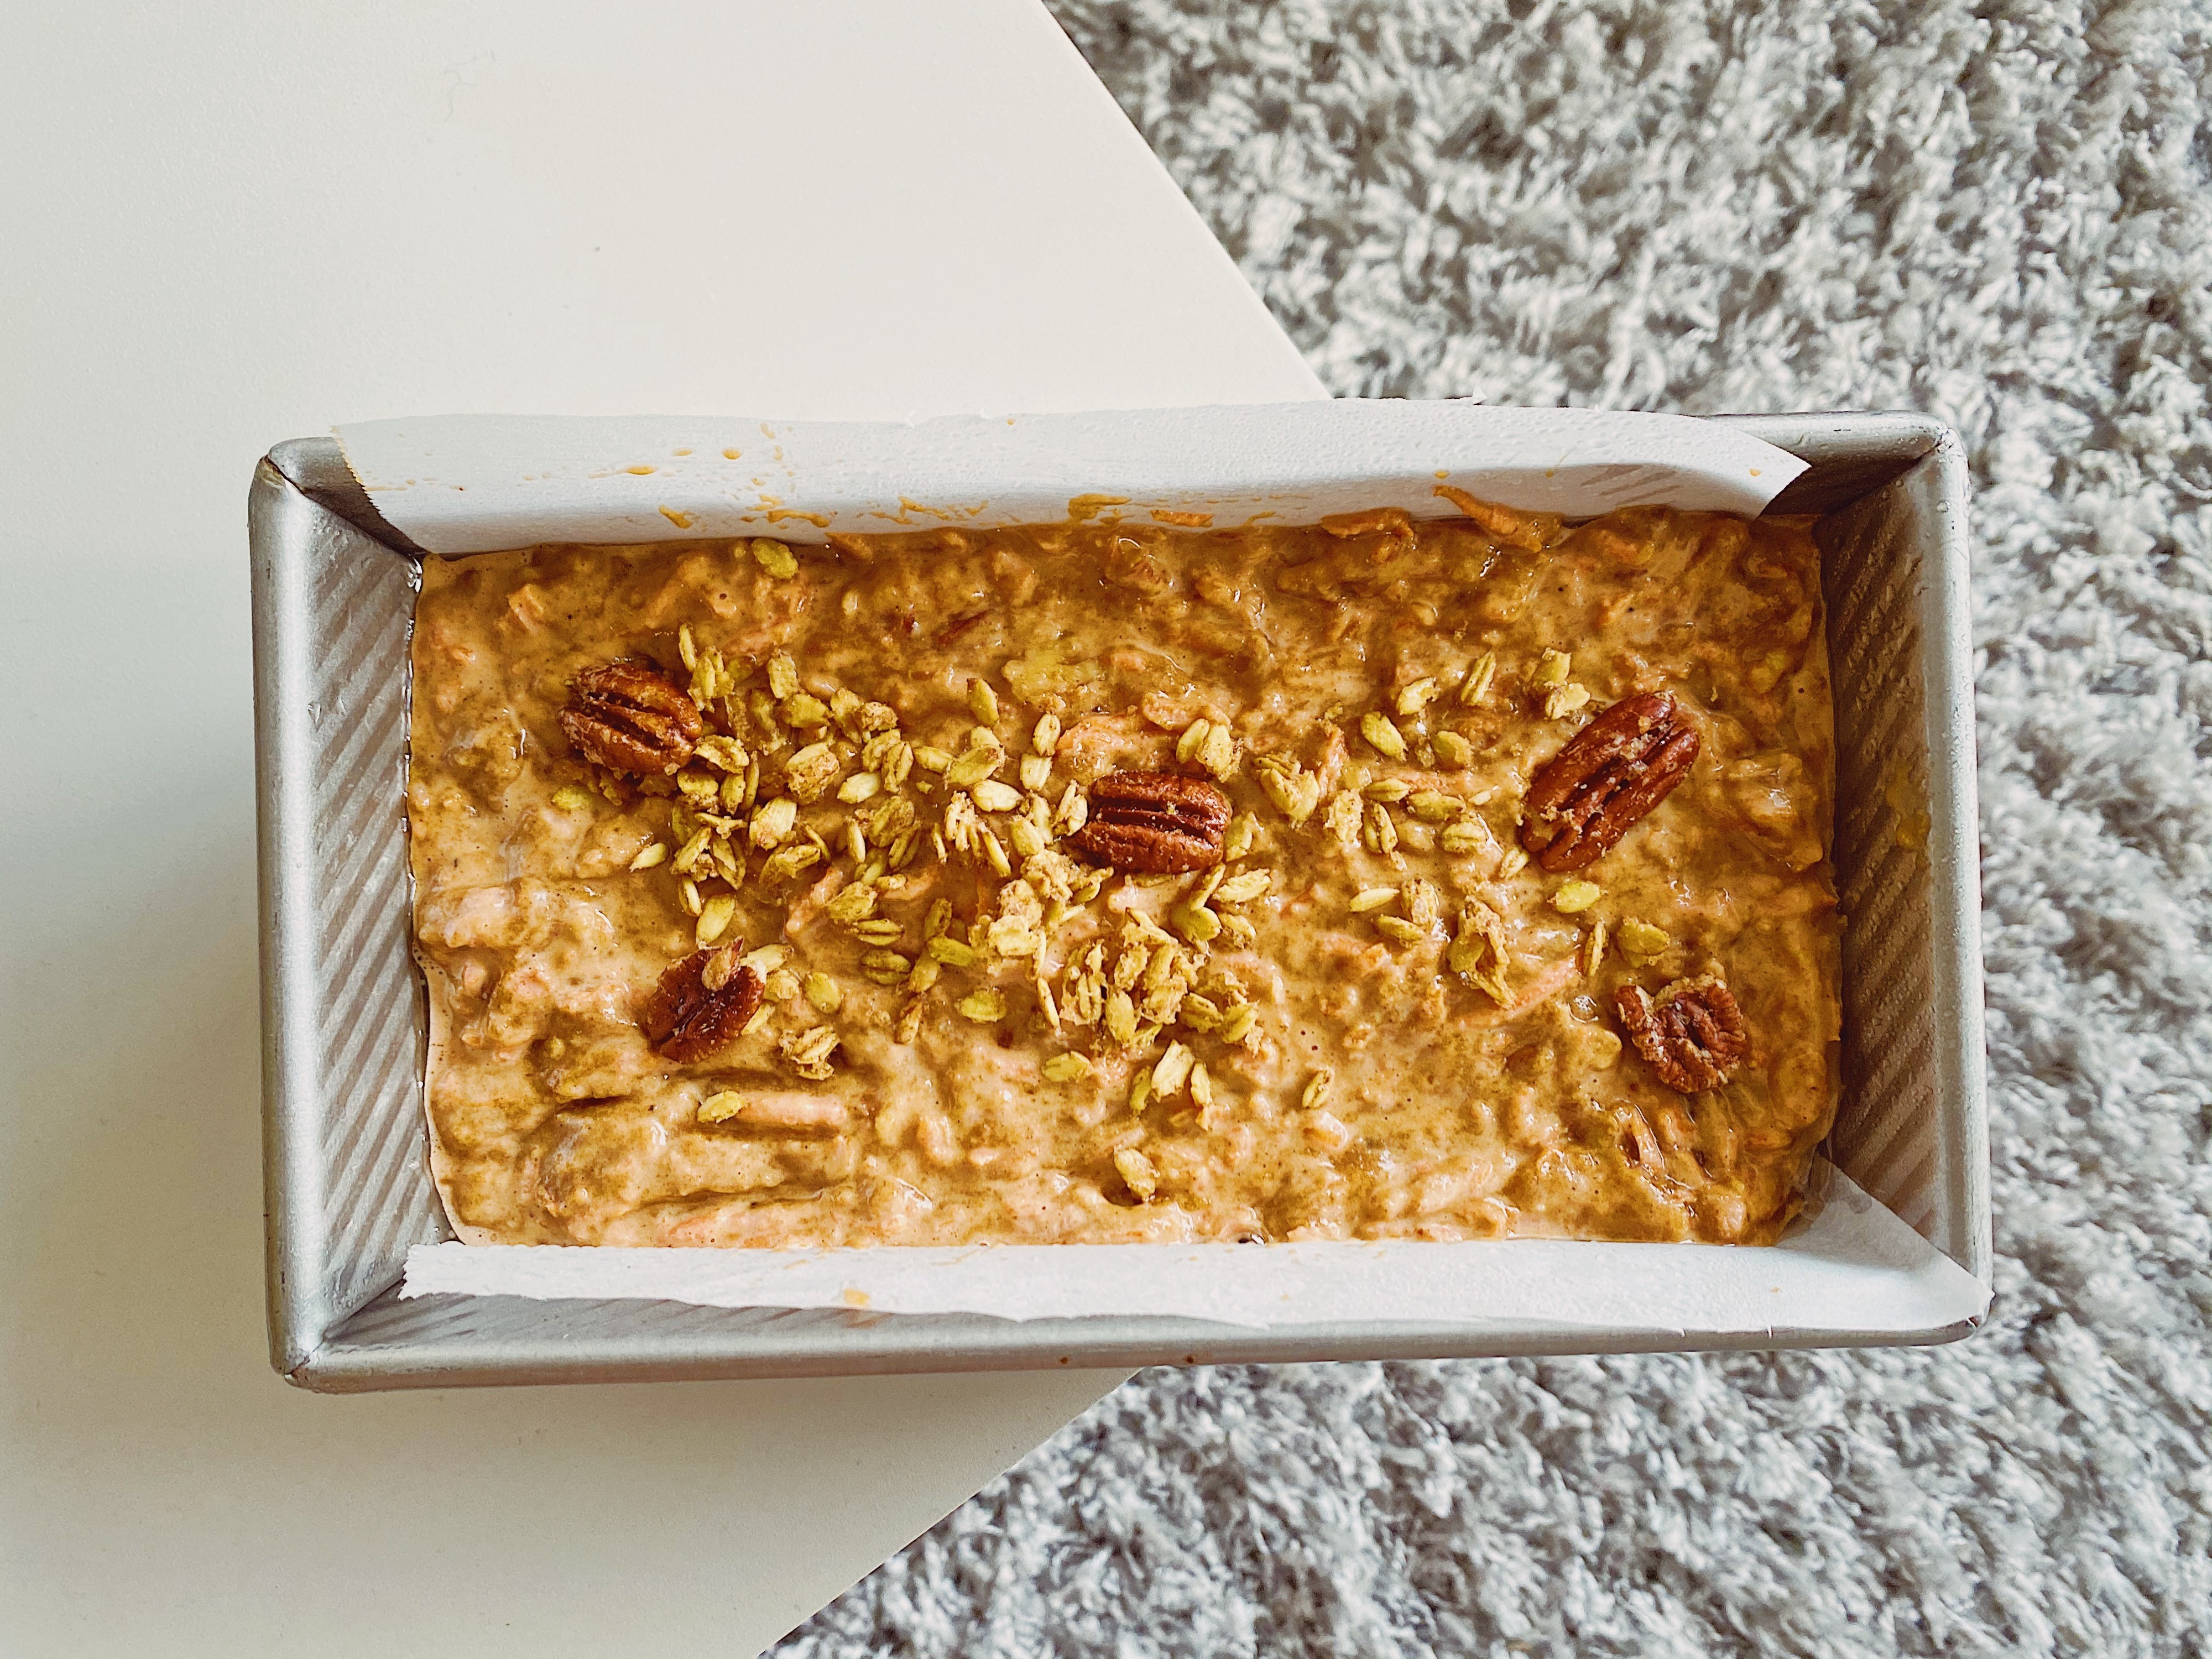 A carrot cake ready to be baked with a sprinkle of granola and 5 pecans.